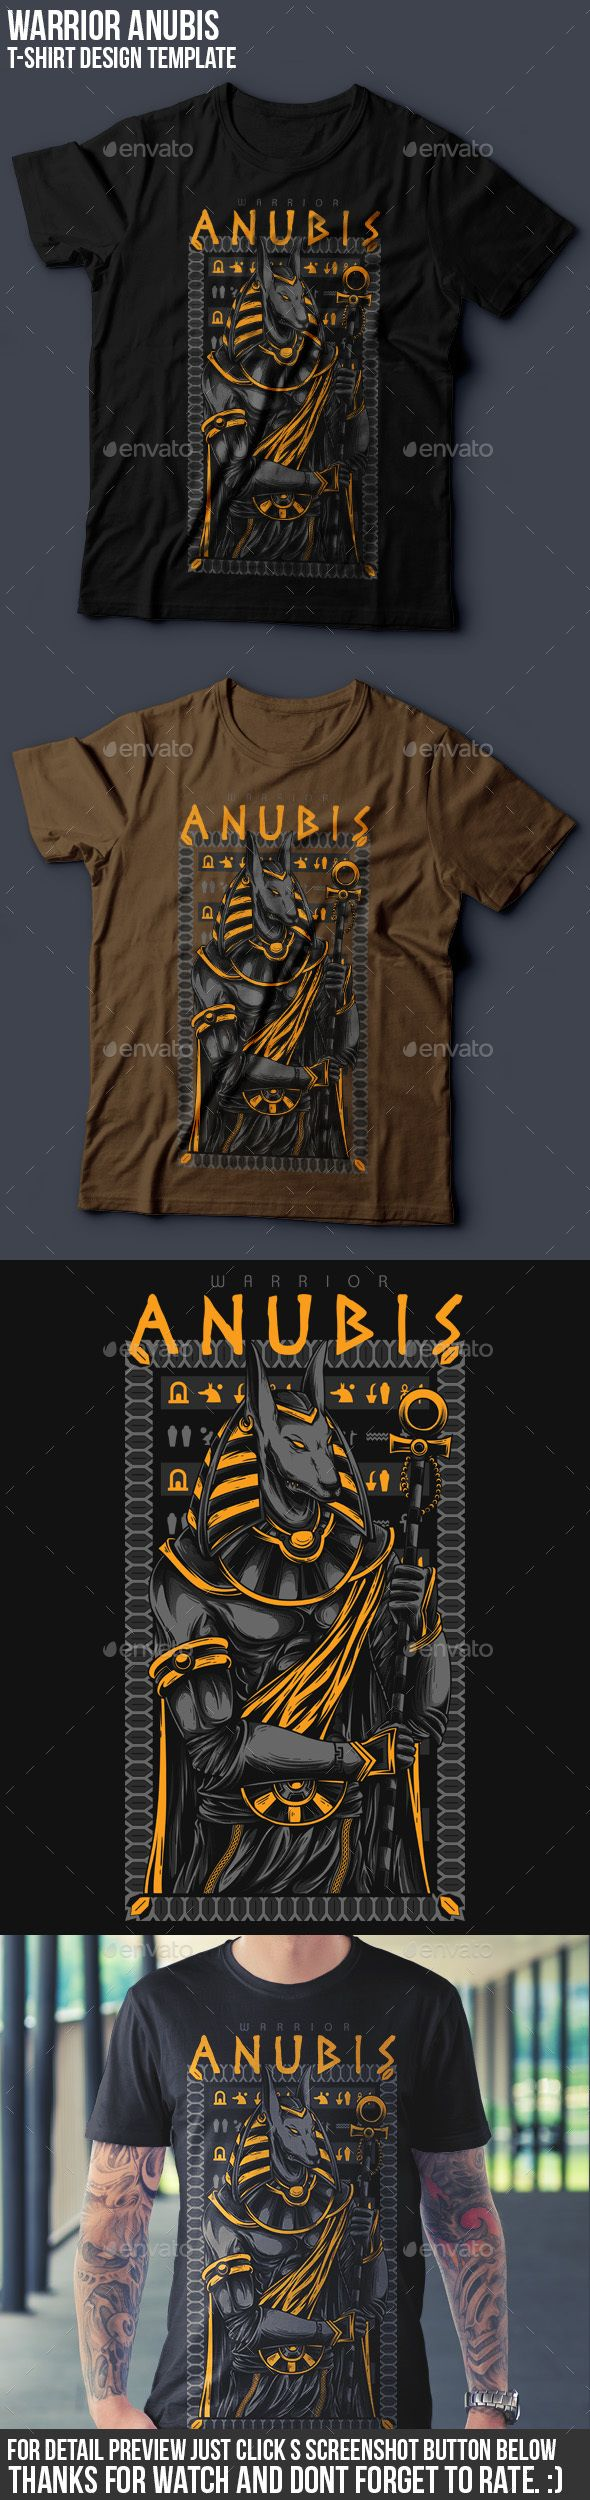 Anubis Warrior T-Shirt Design Vector EPS, Transparent PNG, AI Illustrator. Download here: https://graphicriver.net/item/anubis-warrior-tshirt-design/17240720?ref=ksioks